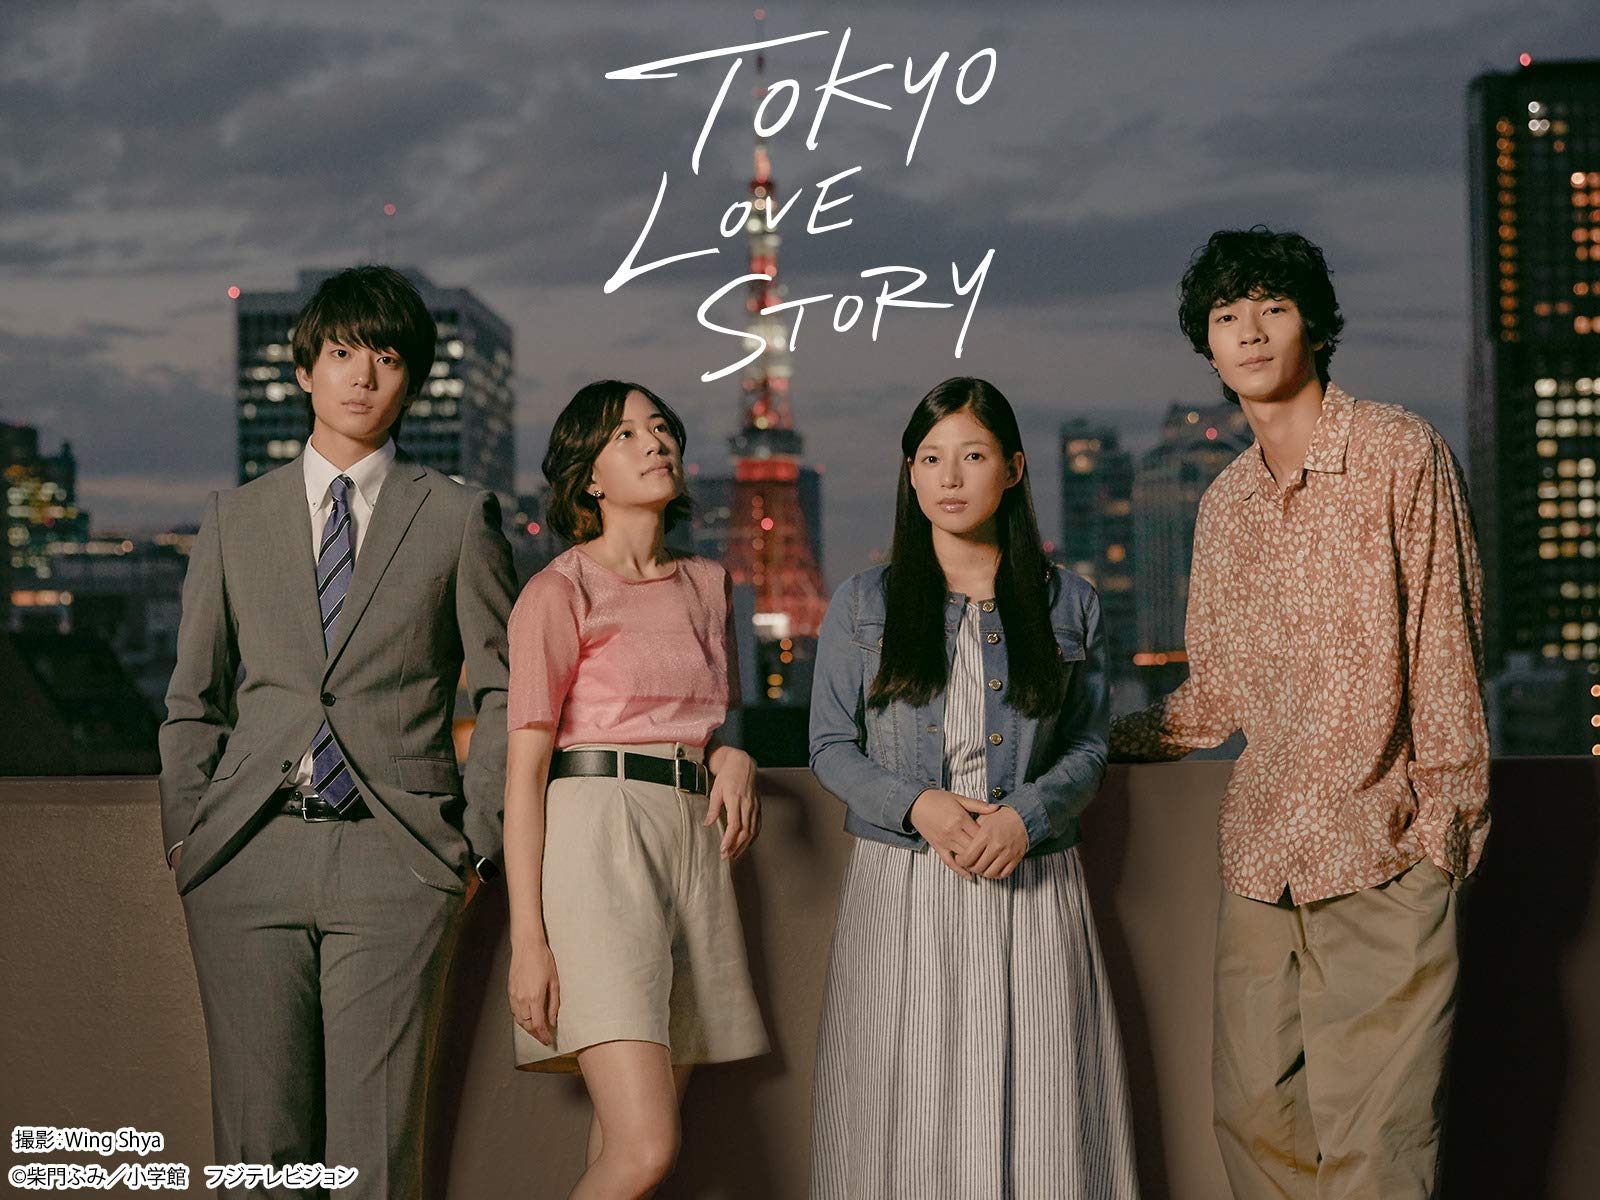 Tokyo Love Story 2020 - Episode 9 1080p